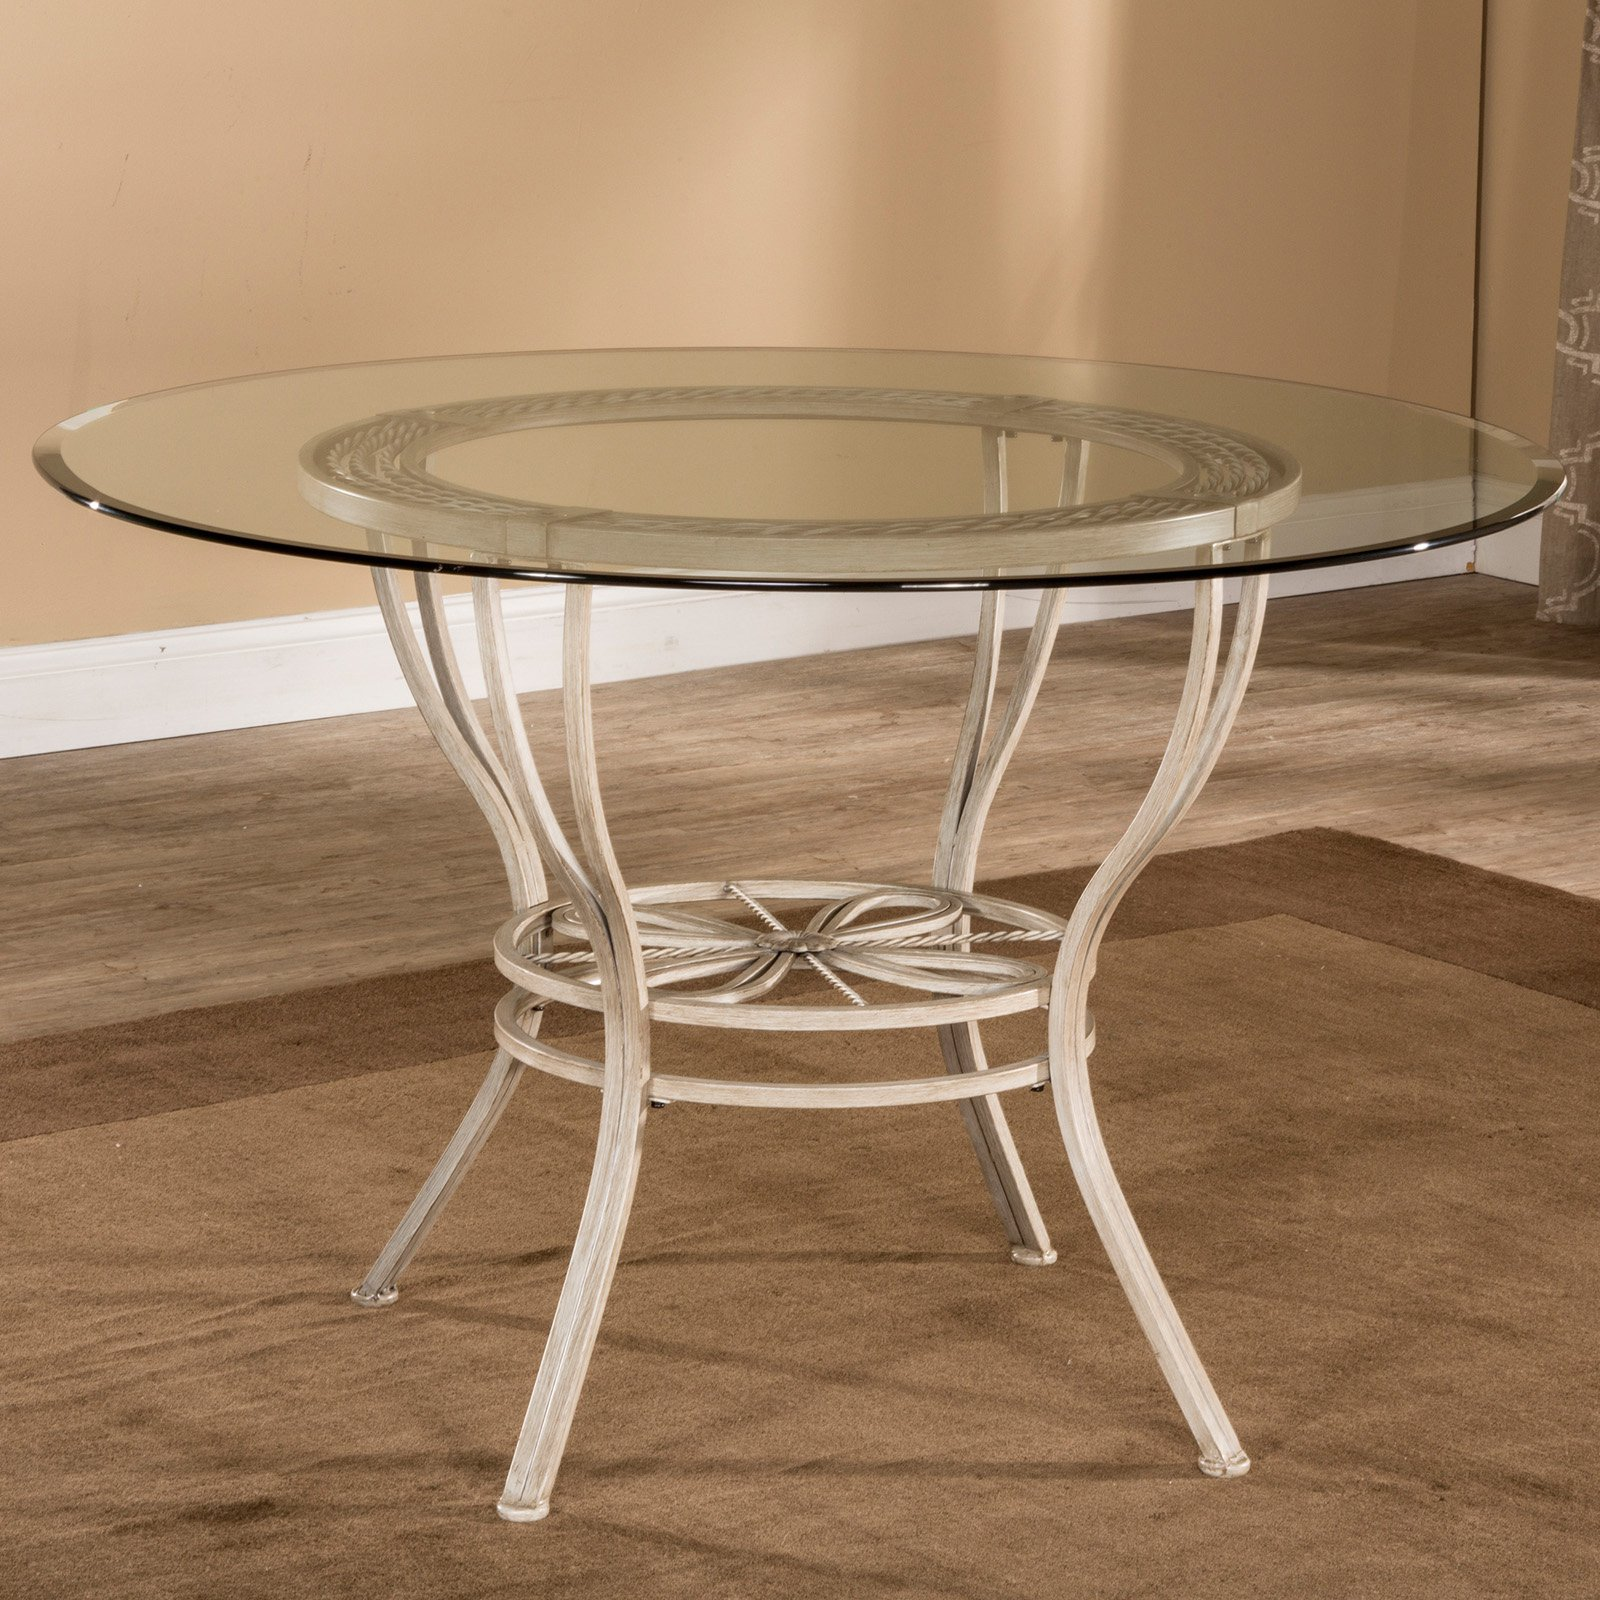 Hillsdale Furniture Napier Round Dining Table